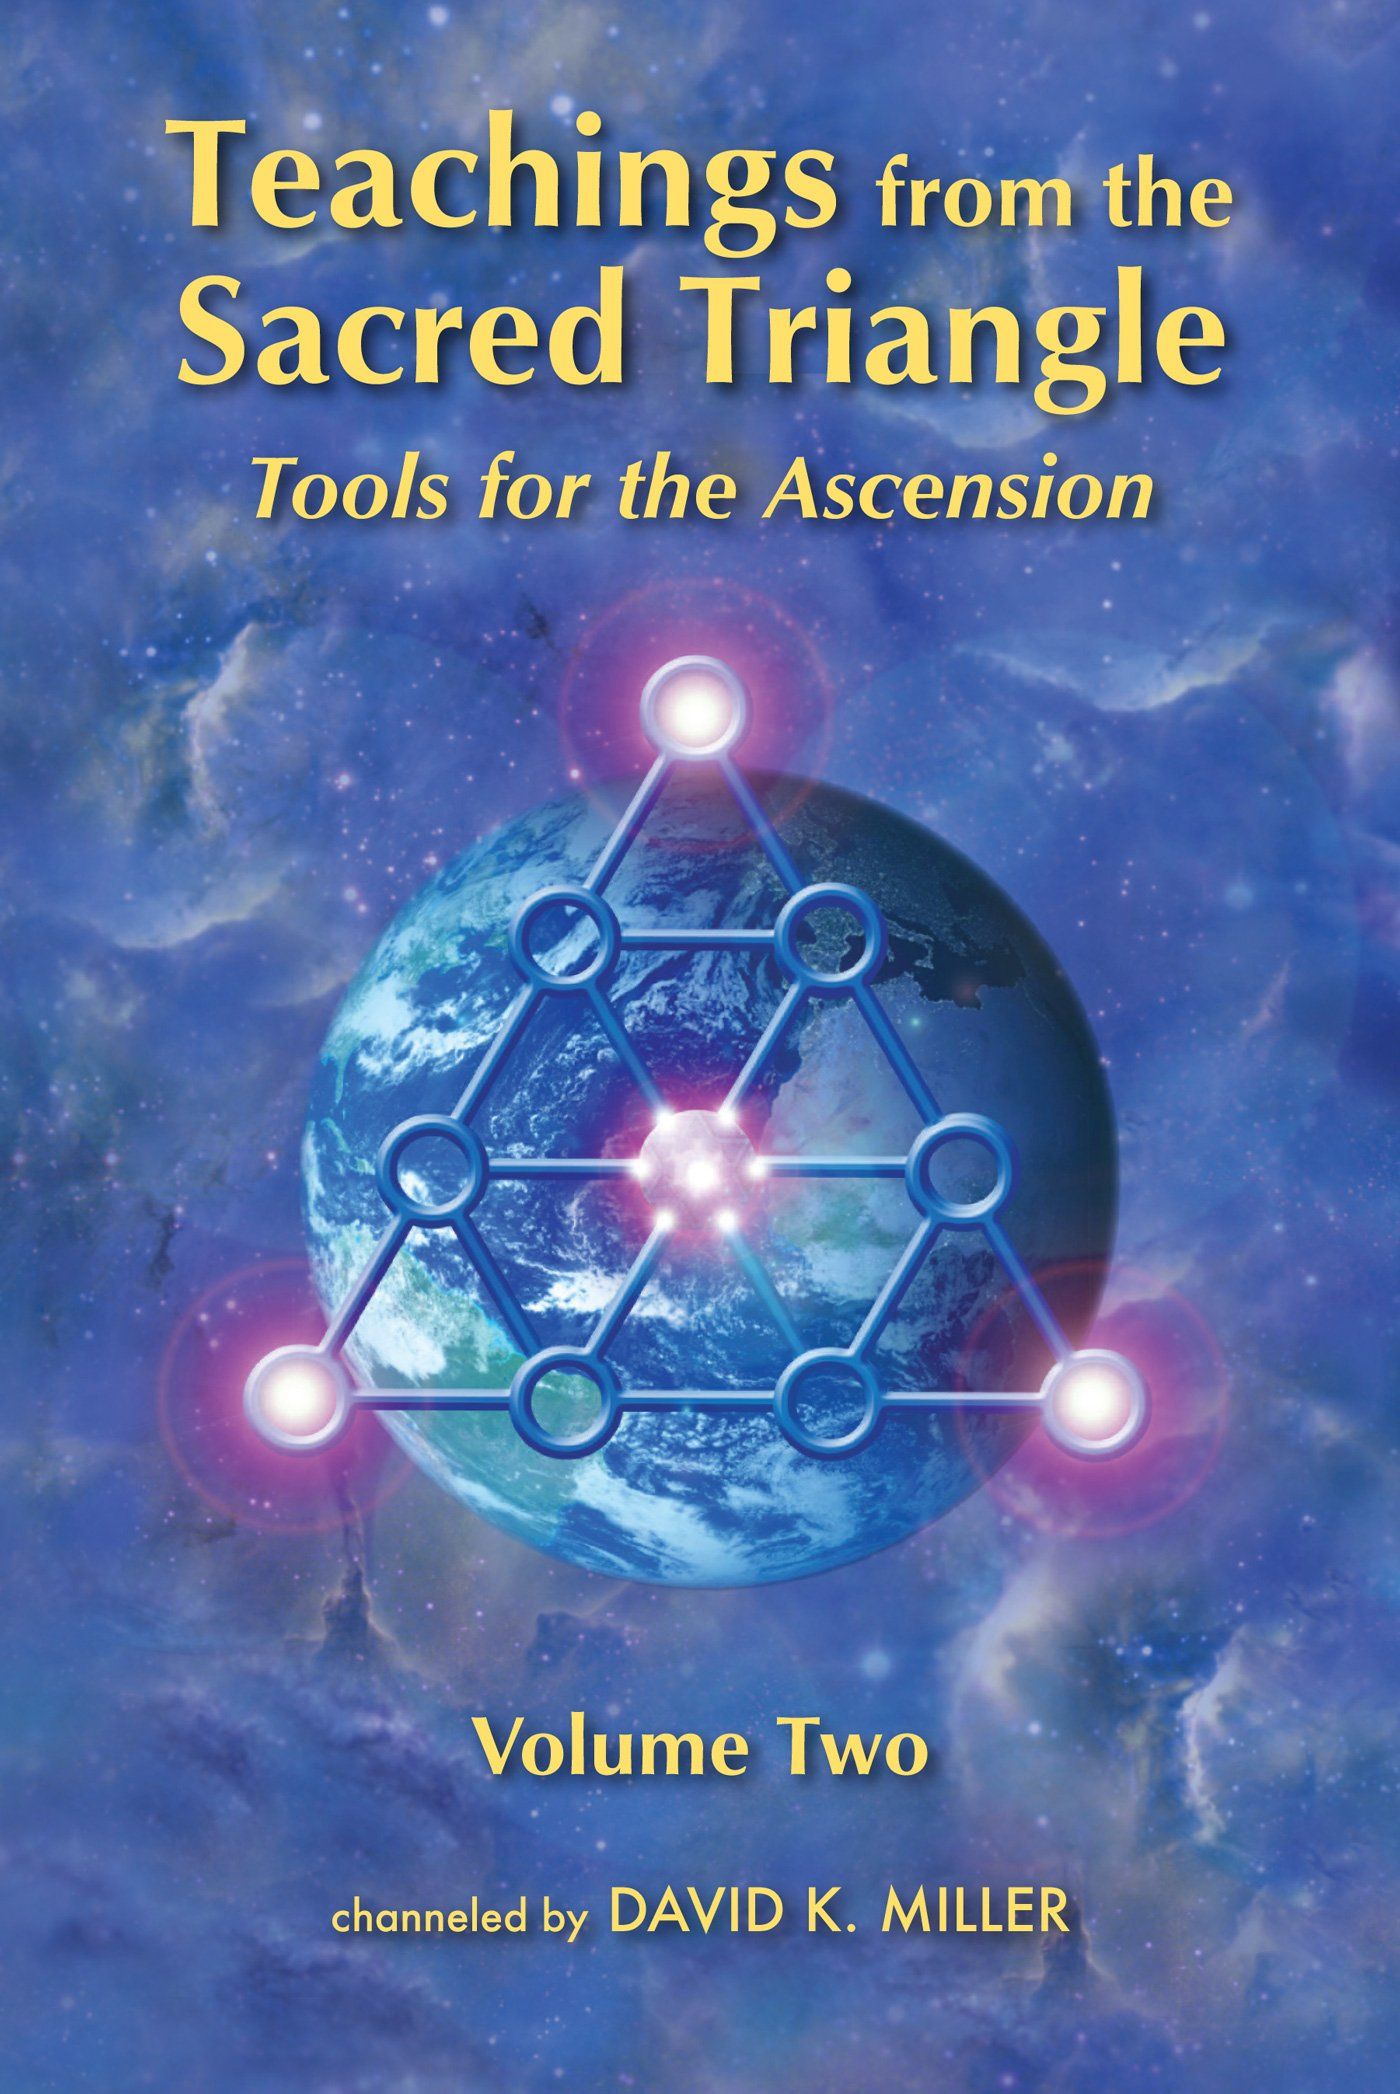 Amazon.com: Teachings from the Sacred Triangle: Tools for Ascension ...